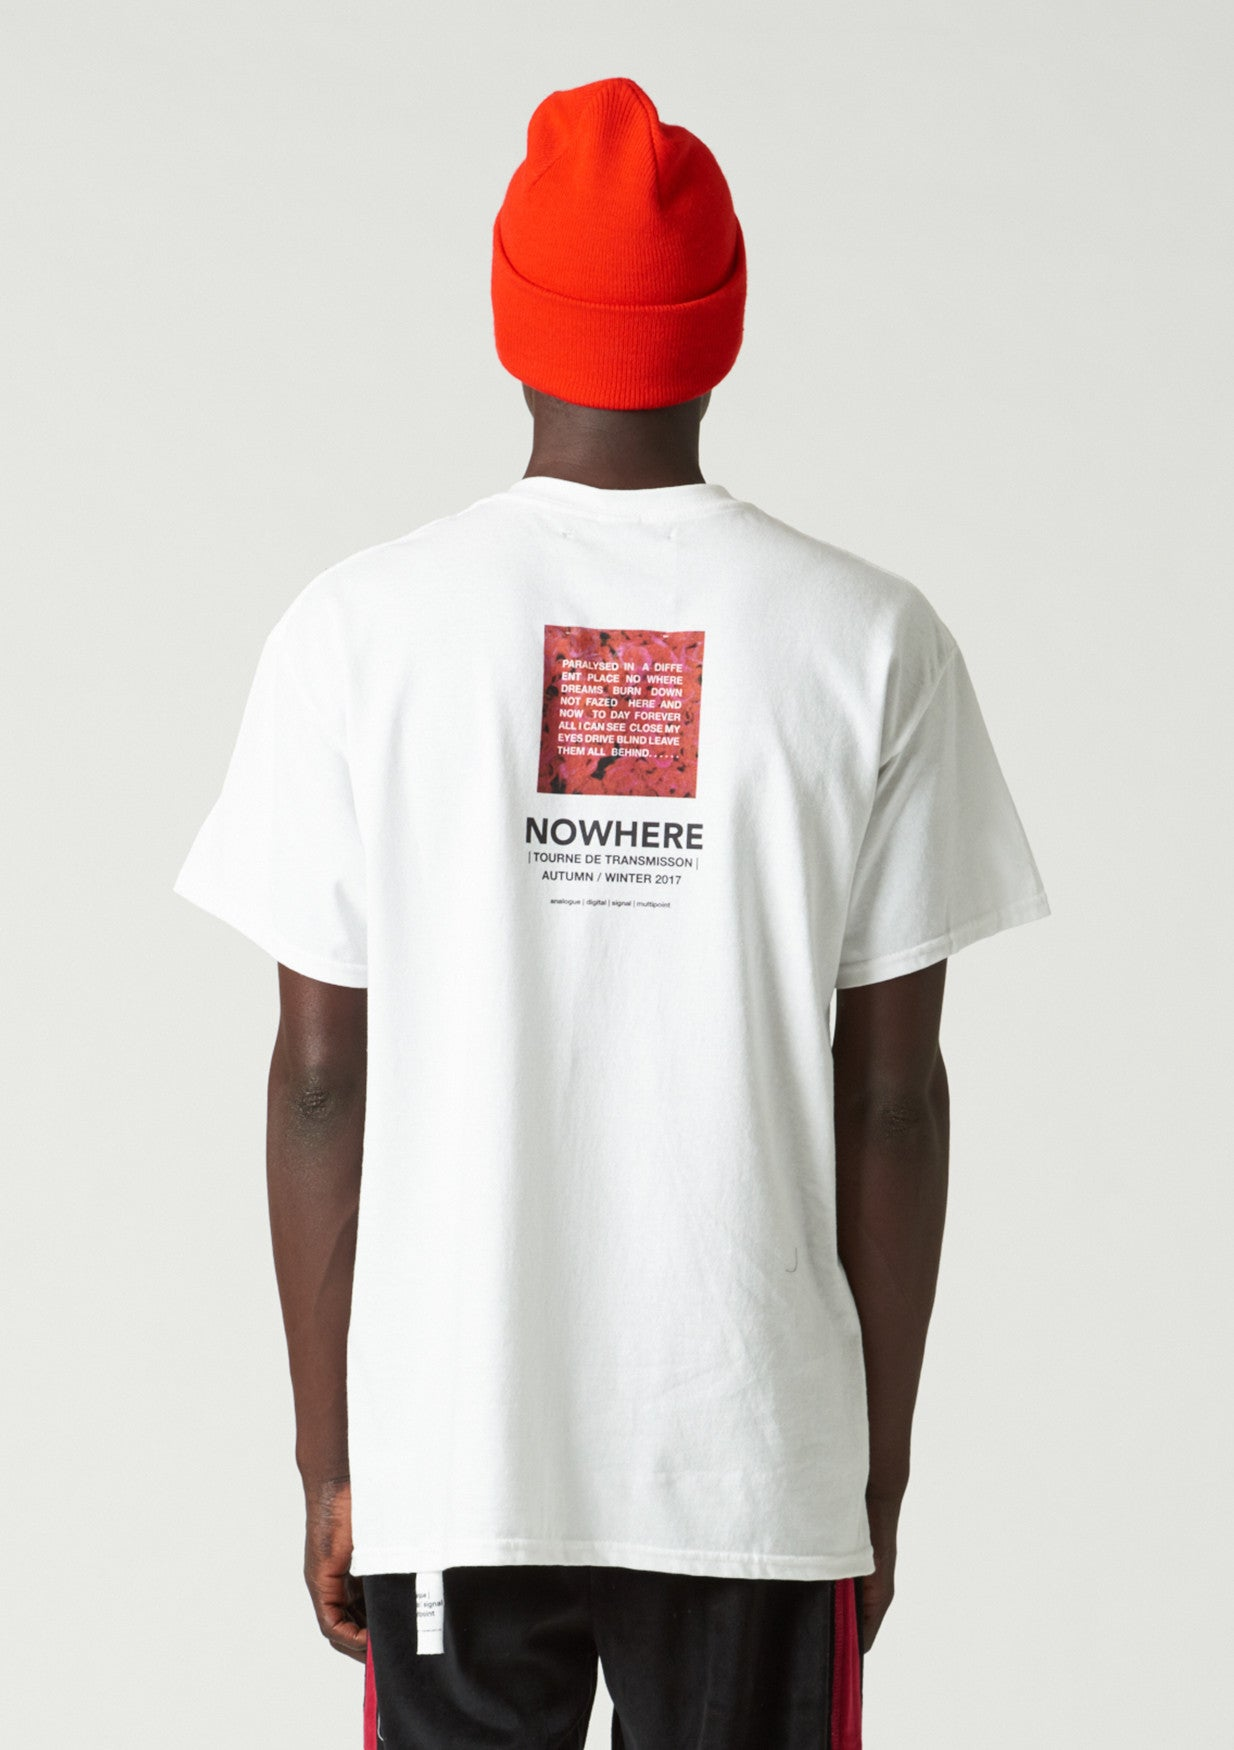 Nowhere T Shirt - red - only 1 size S left